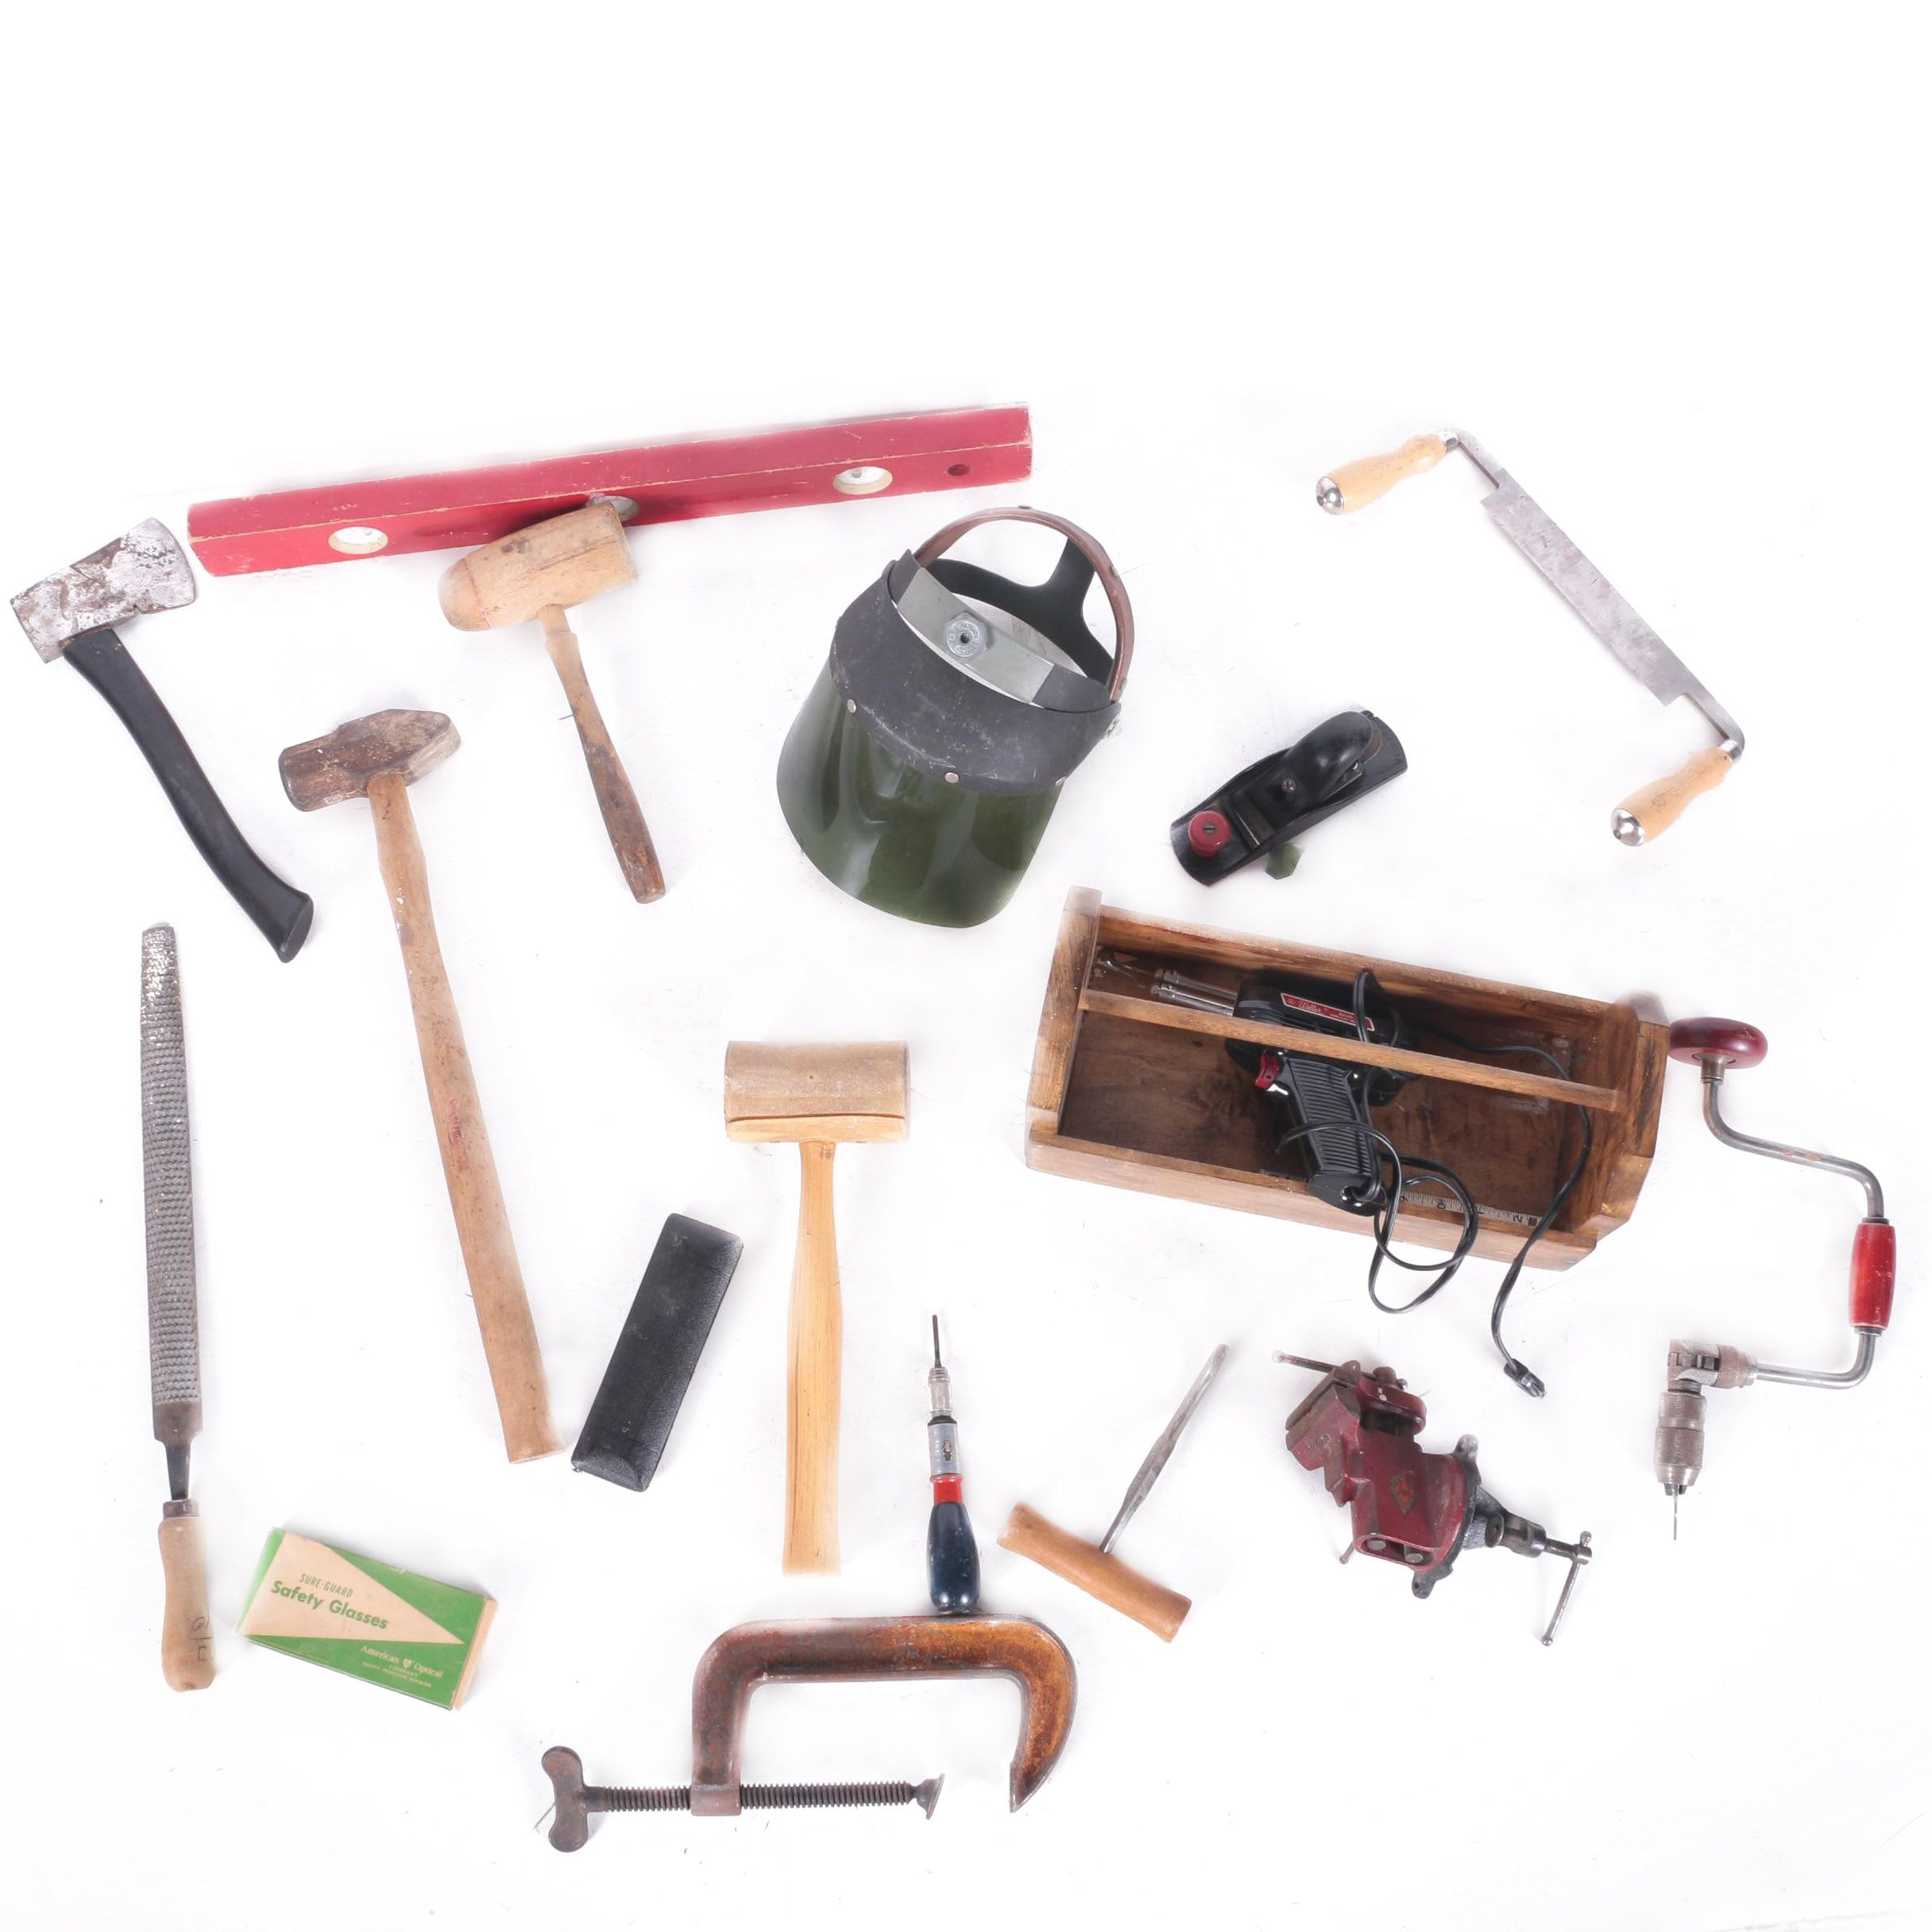 Collection of Handheld Tools